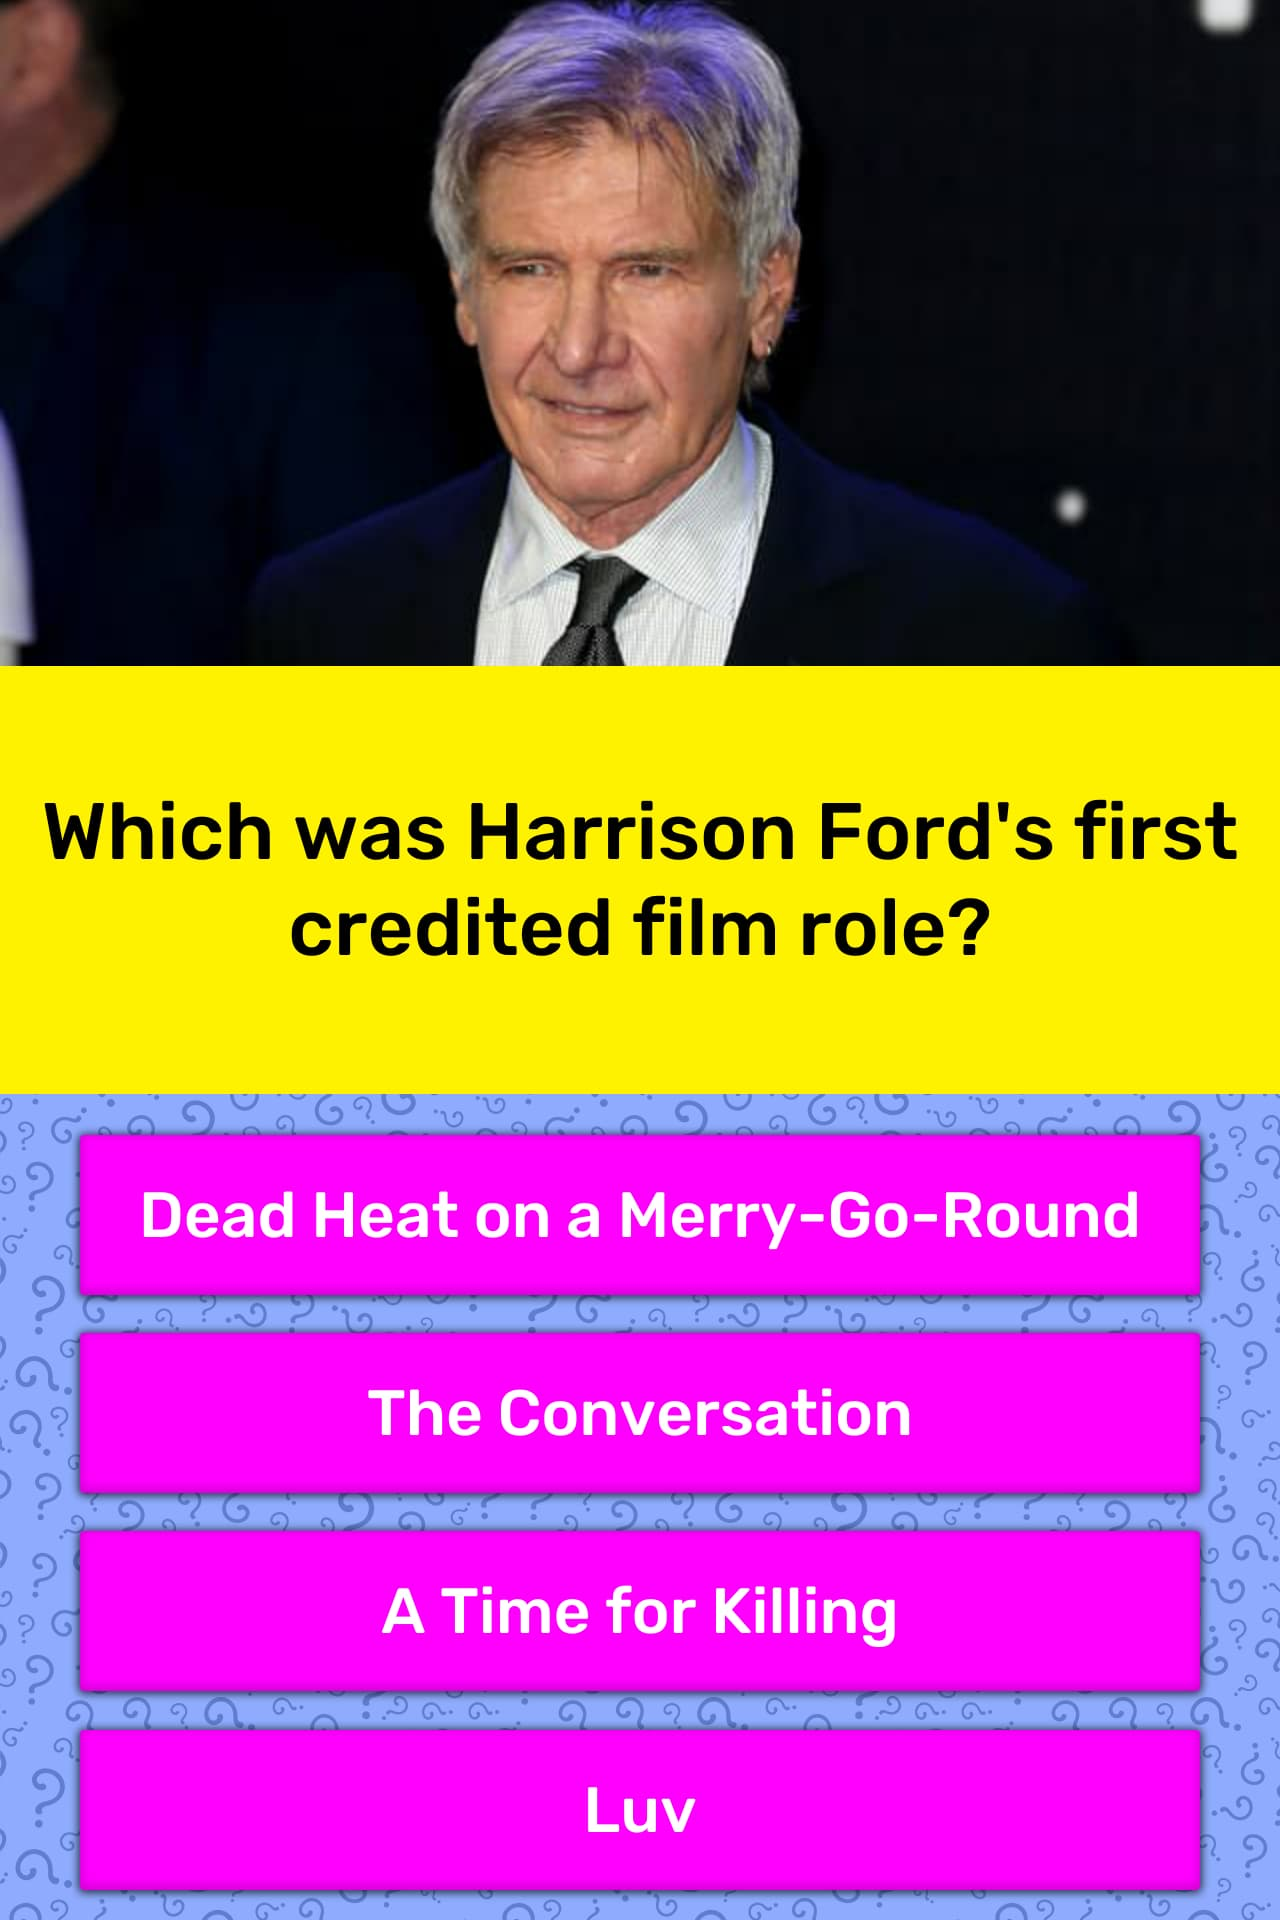 Which was Harrison Ford's first    | Trivia Answers | QuizzClub